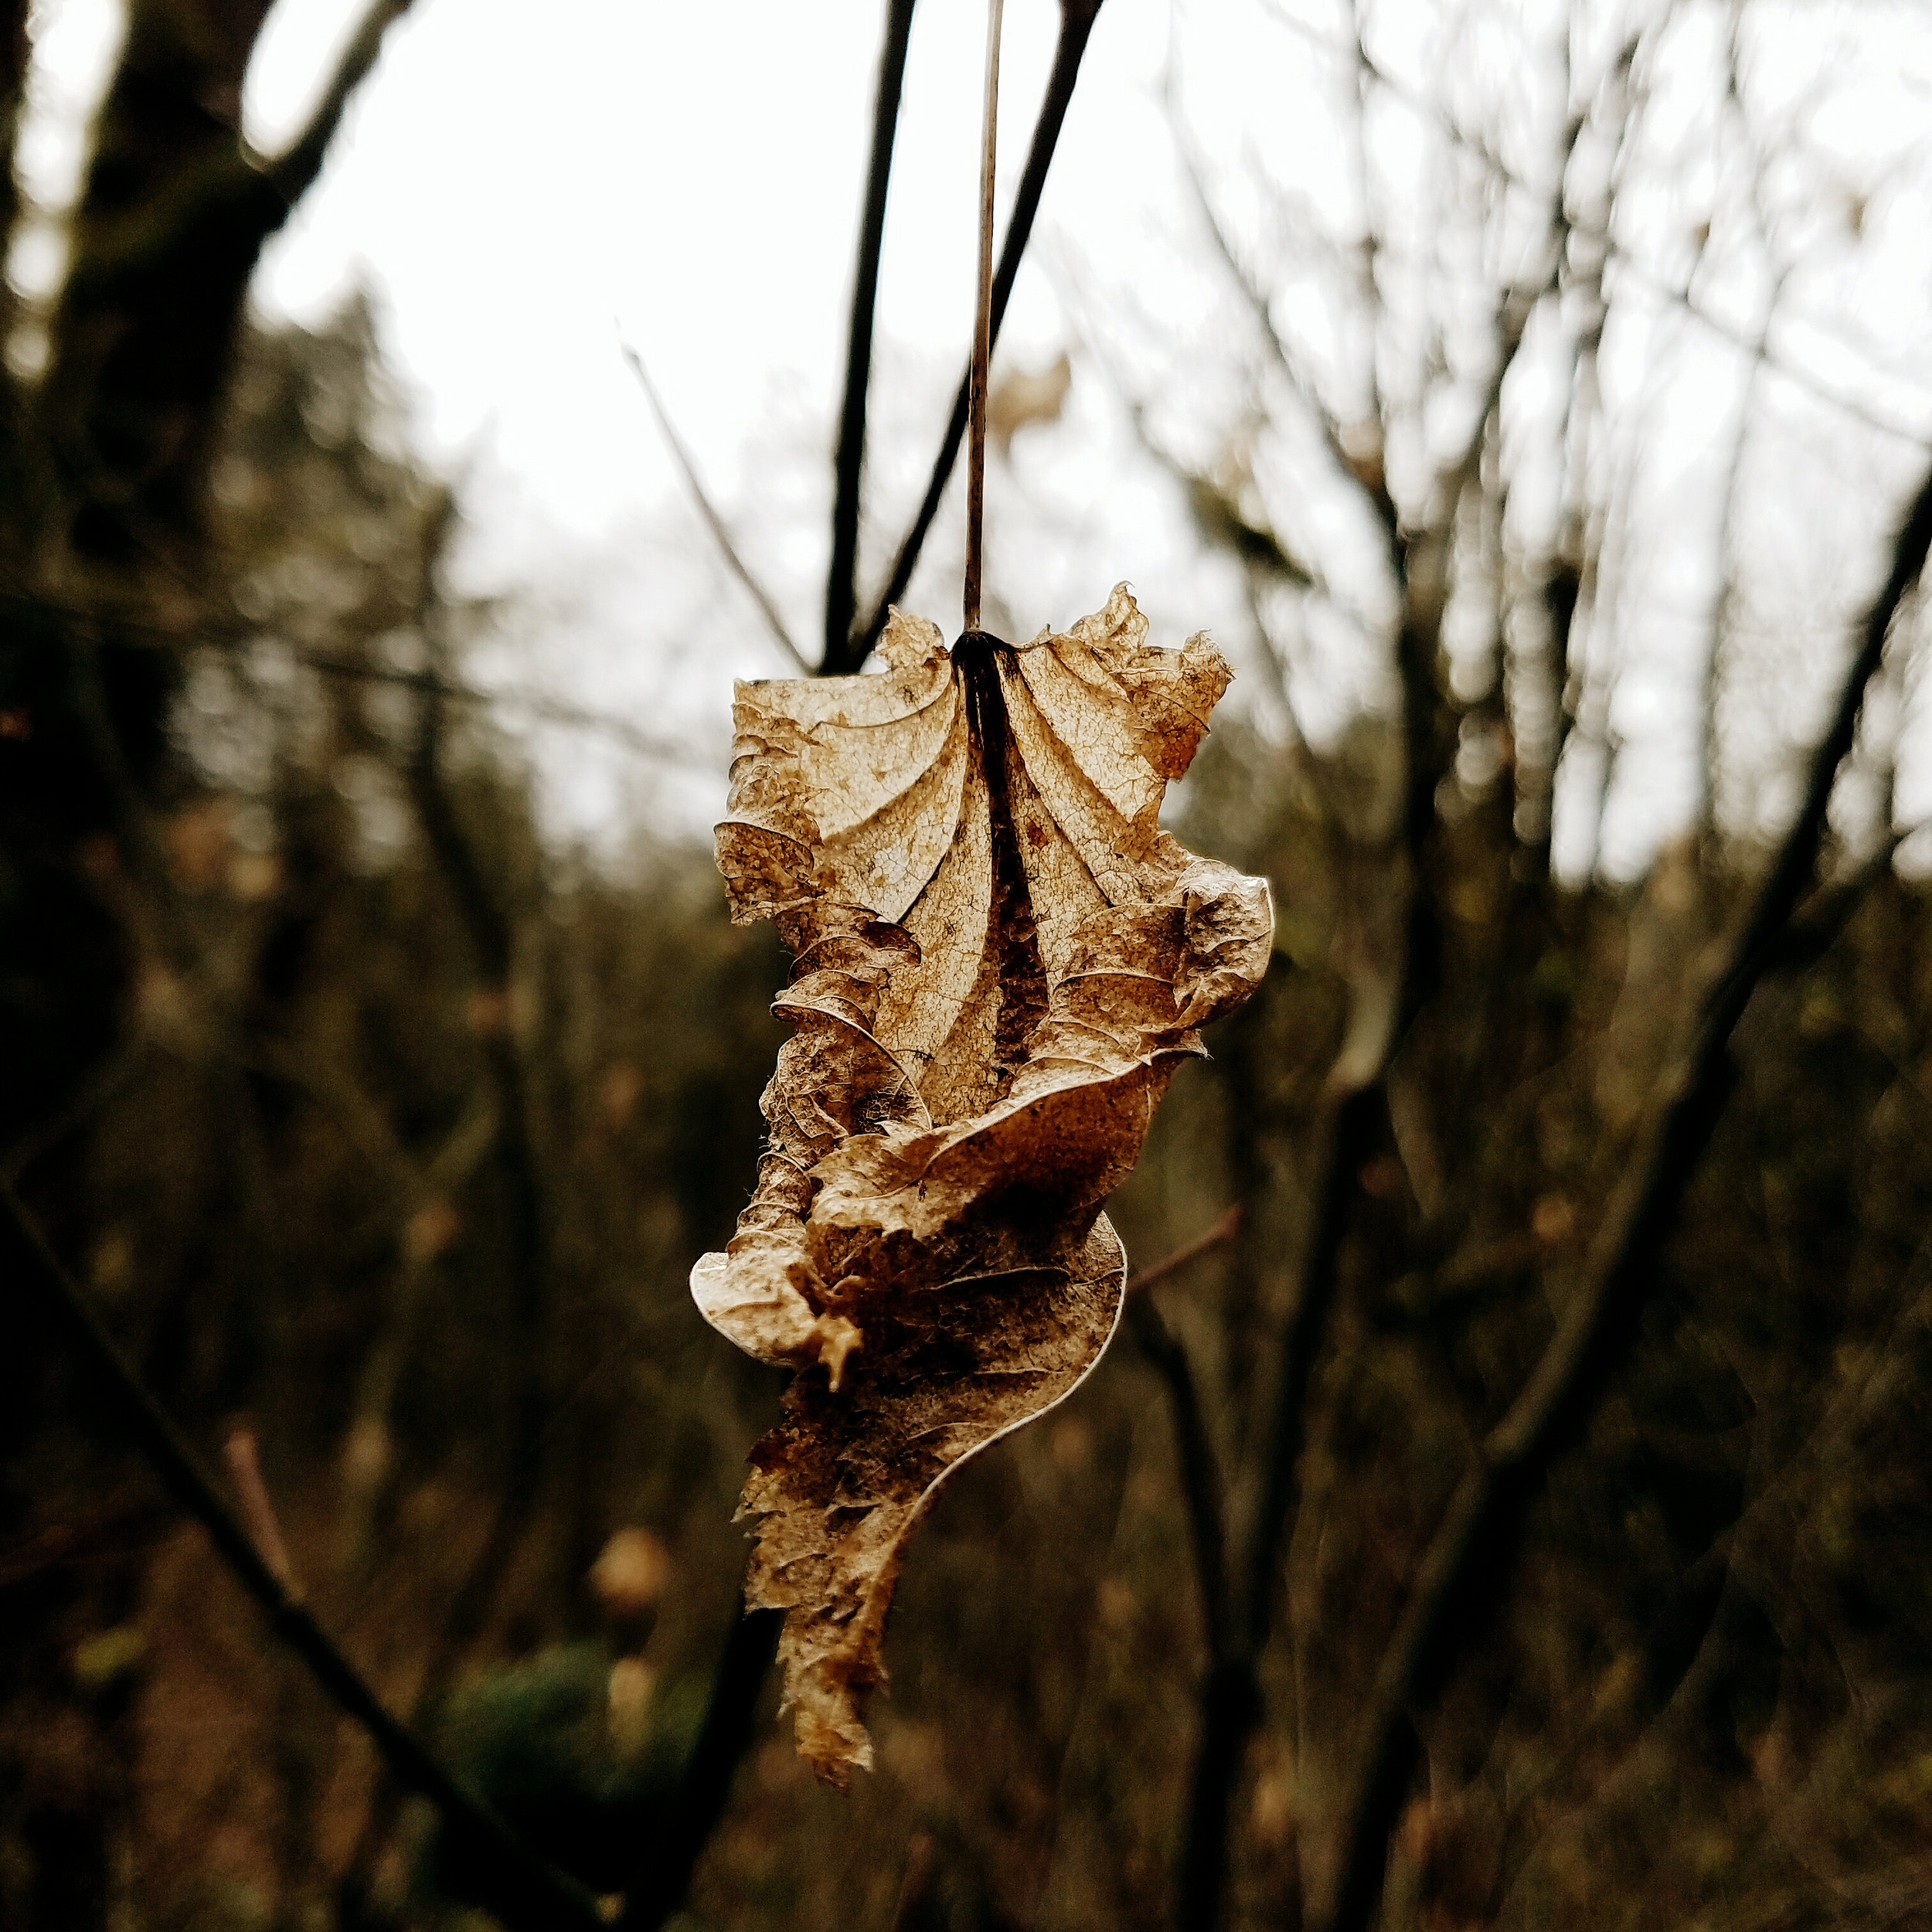 Ghost leaves haunting the branches through winter